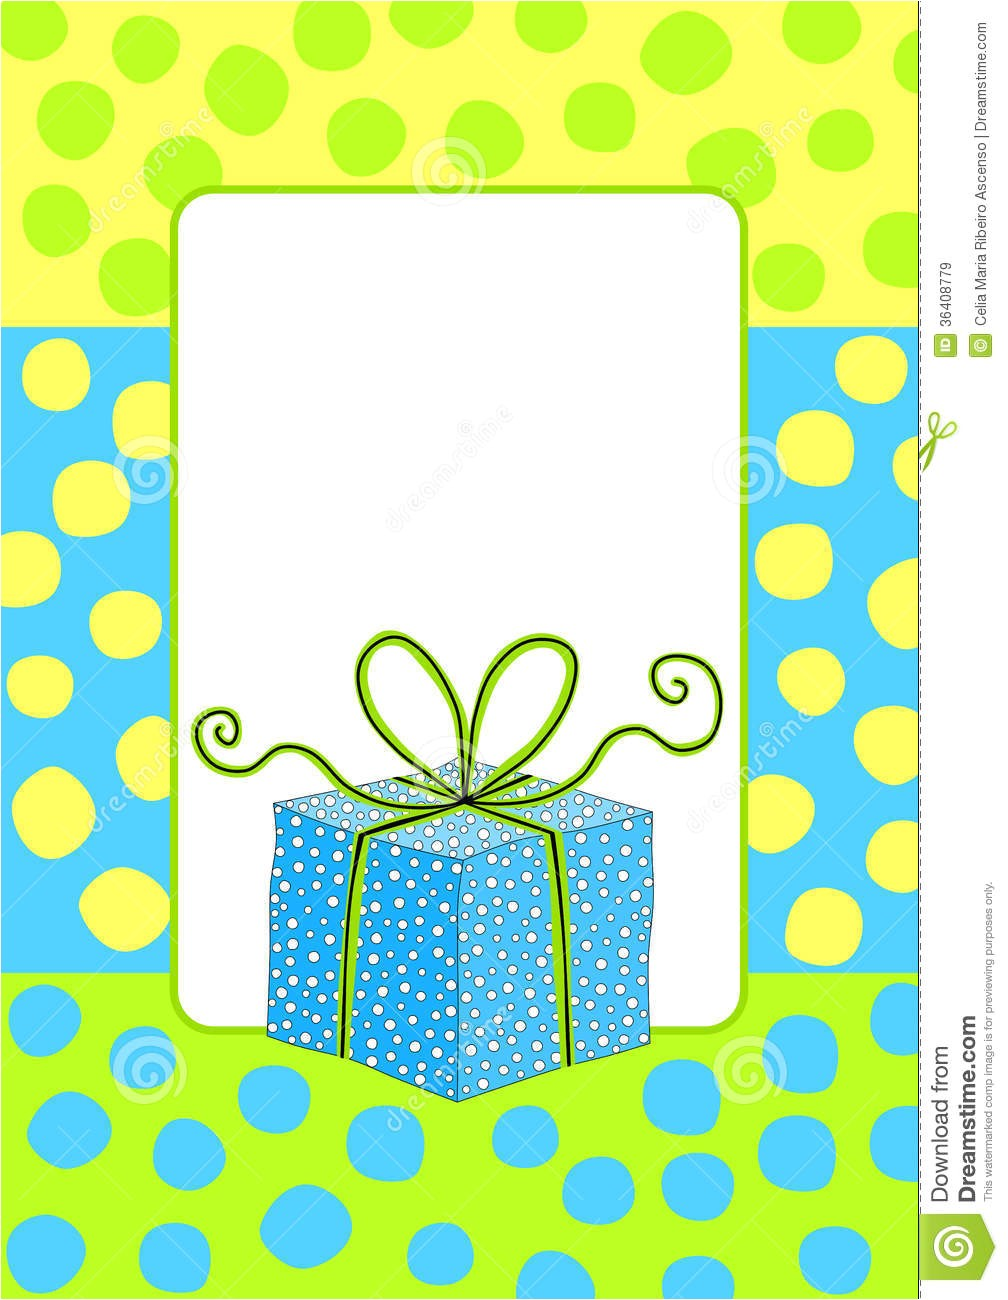 royalty free stock images birthday card invitation gift box border frame polka dot image36408779